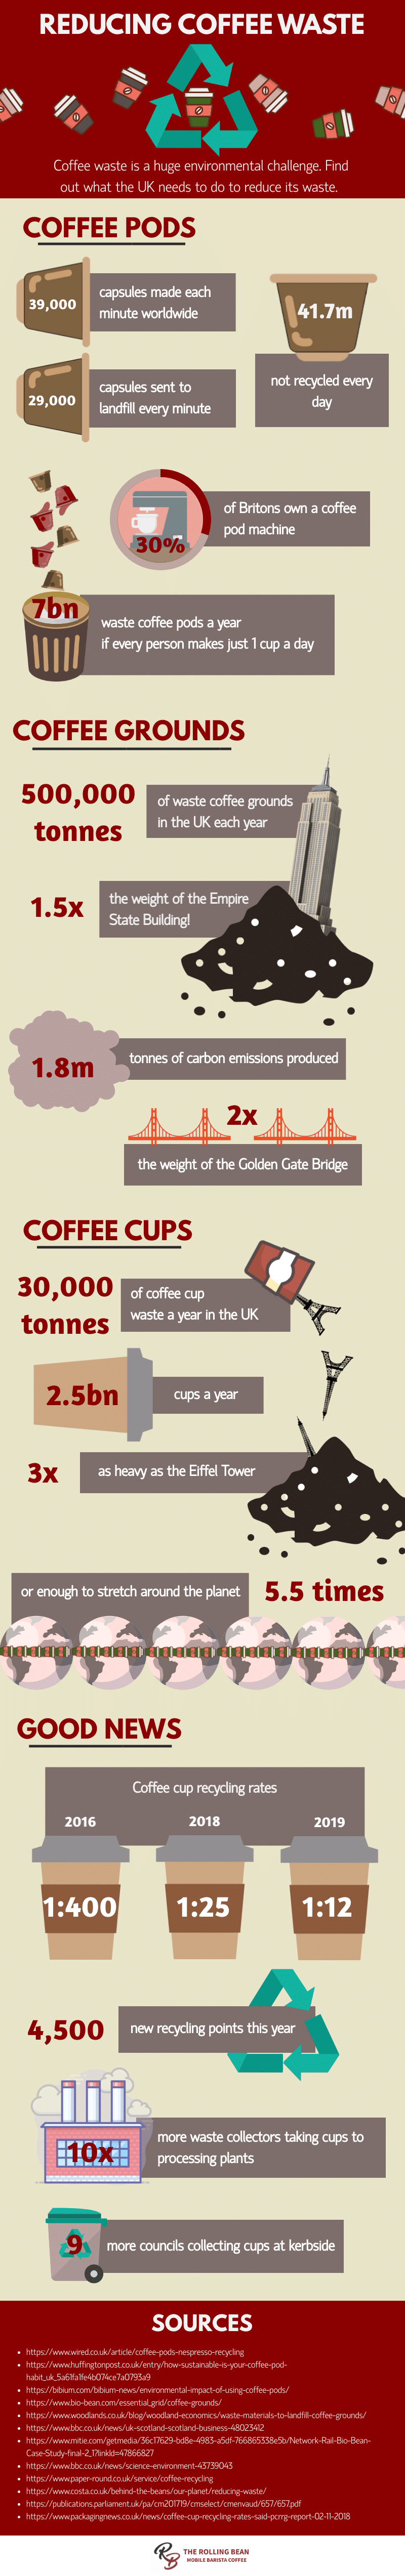 reducing coffee waste - international coffee day 2019